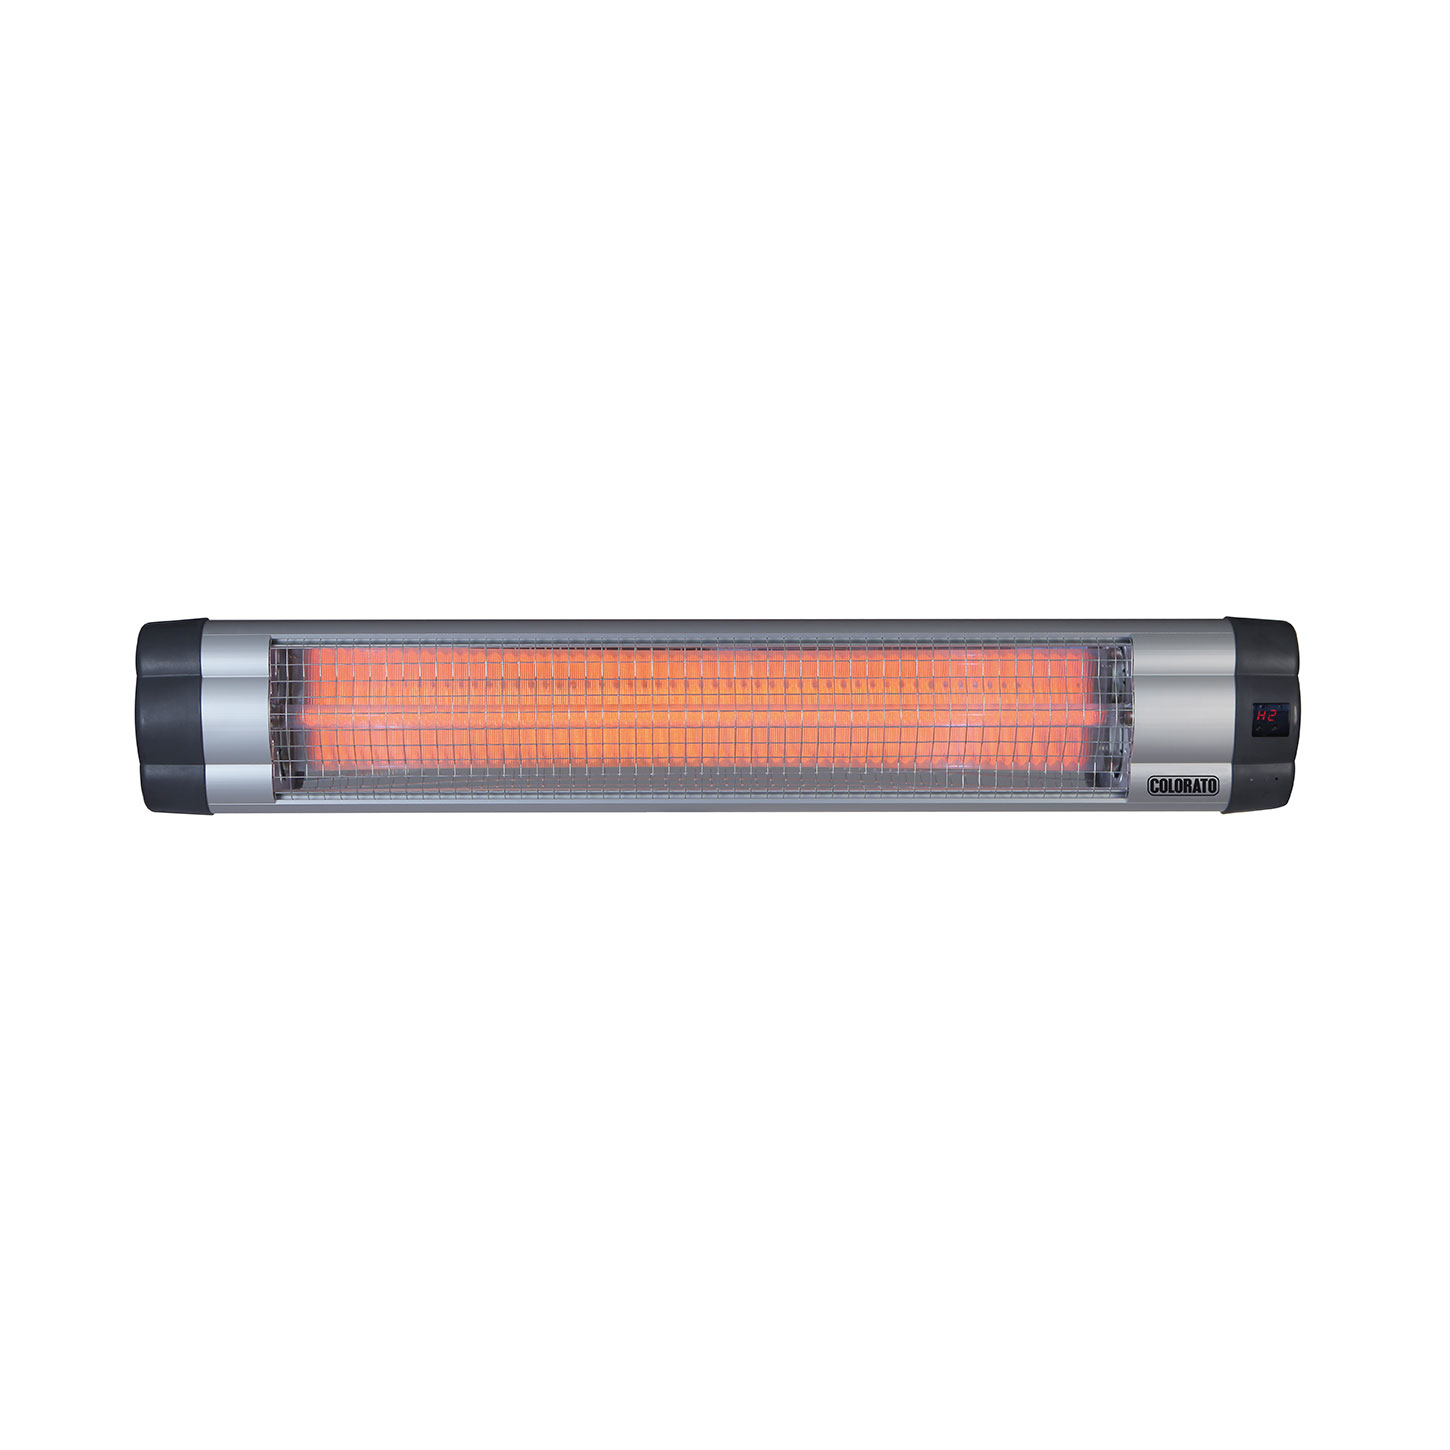 Electric Infrared Heater Uk Line Uk Star Colorato